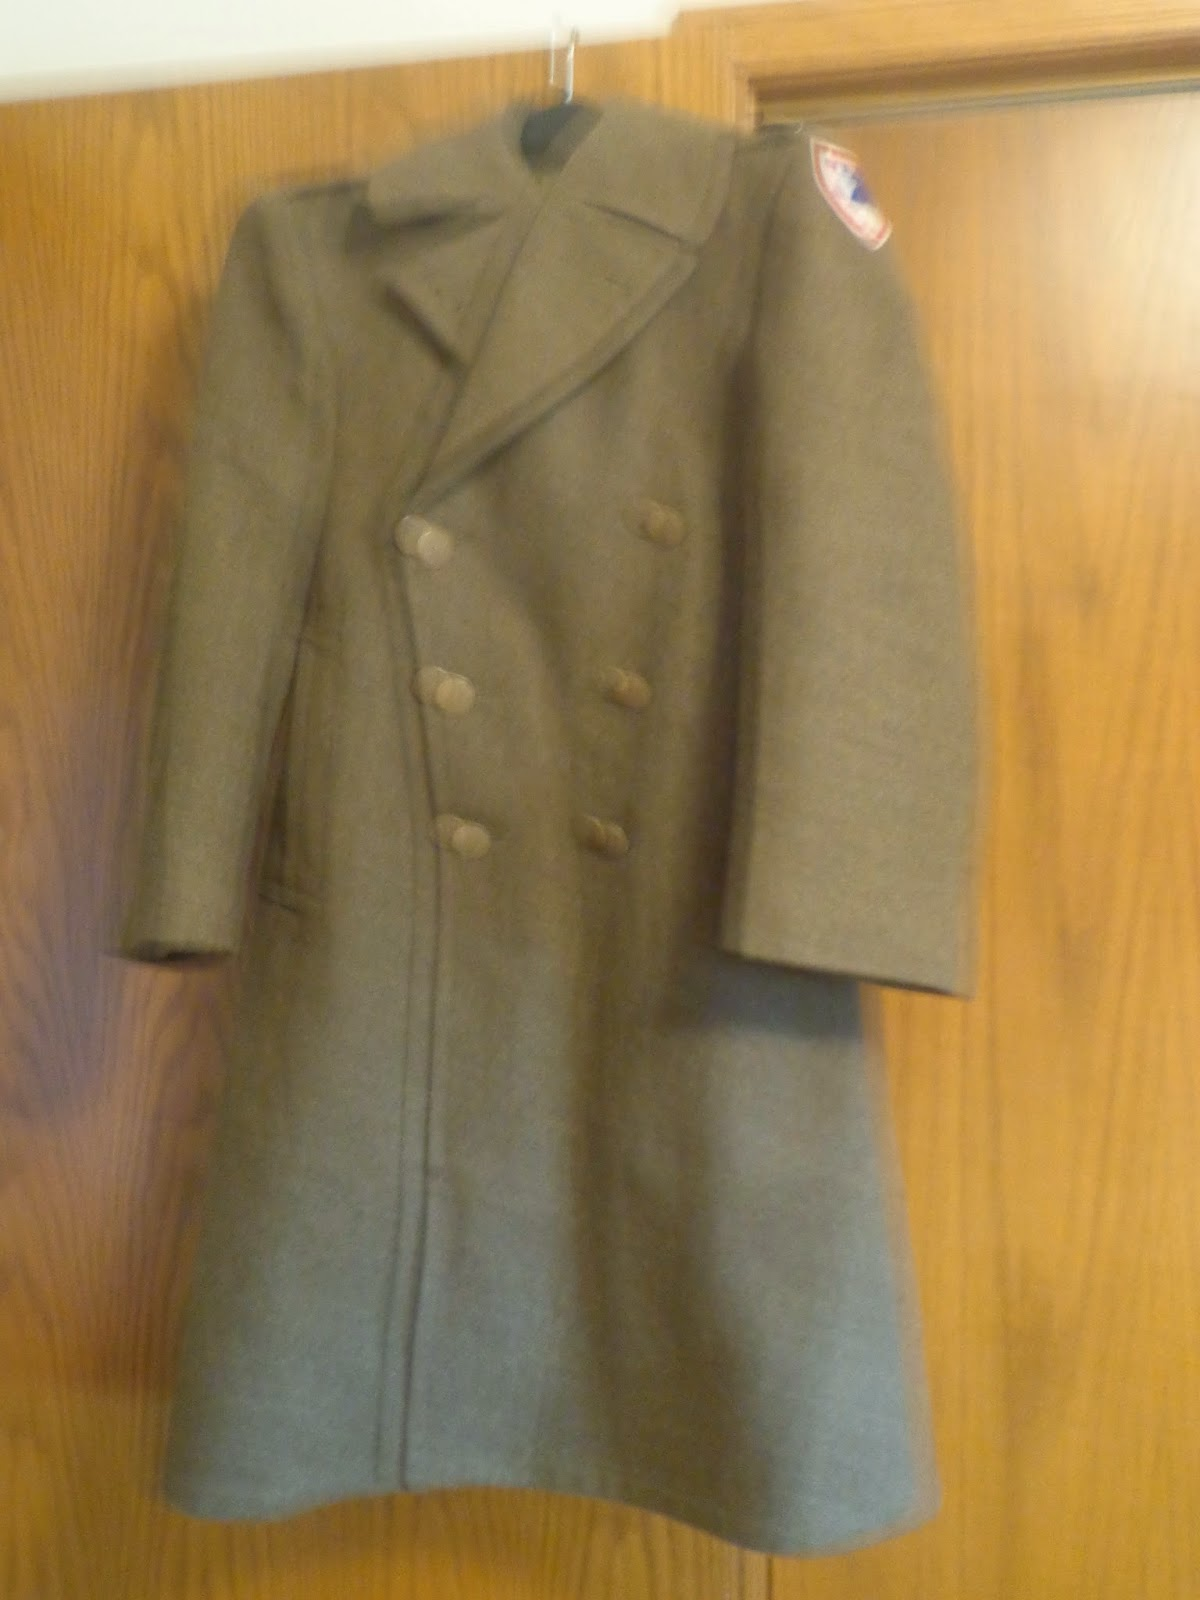 the trench coat front view with the patch on the side